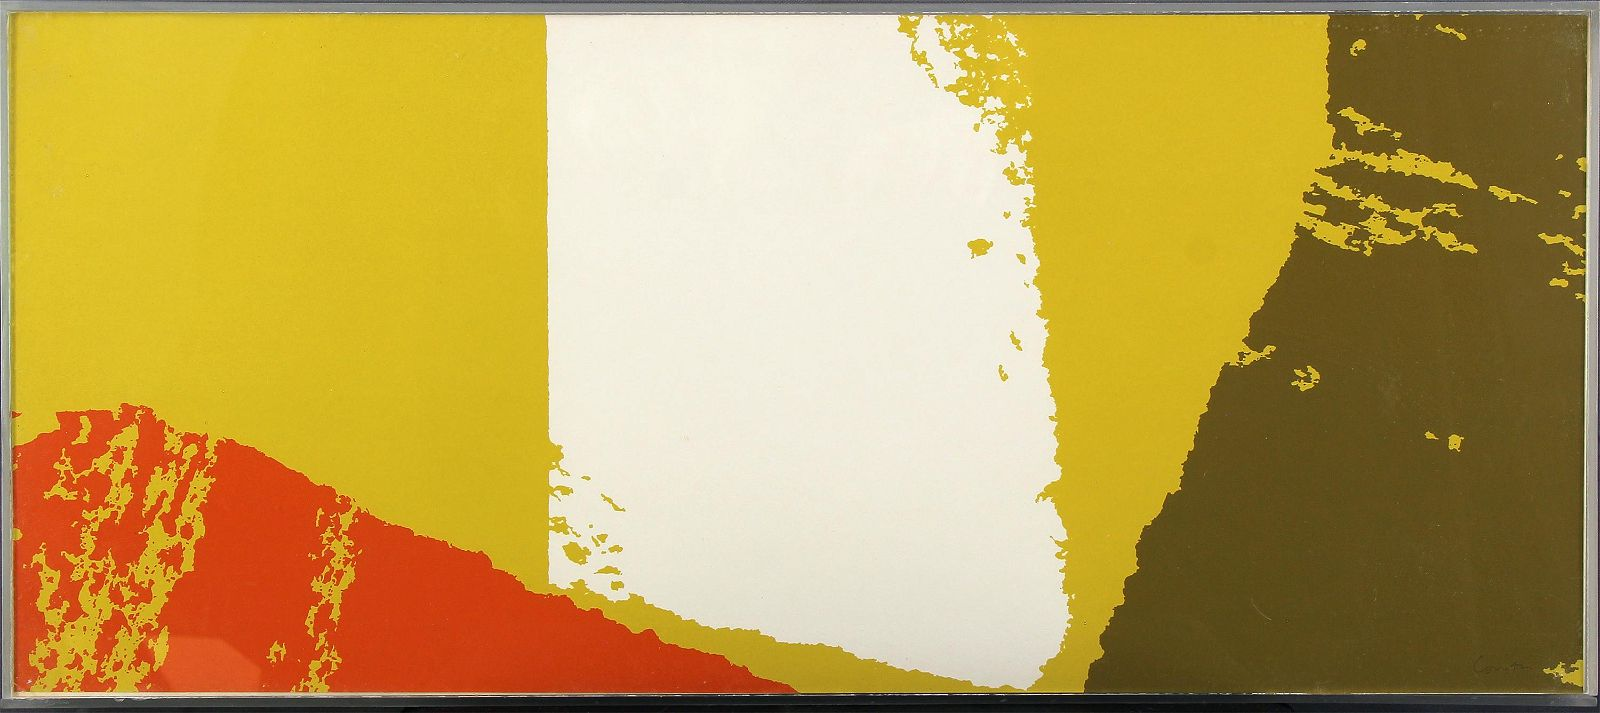 Sister Mary Corita Kent, Untitled (Abstract Orange and